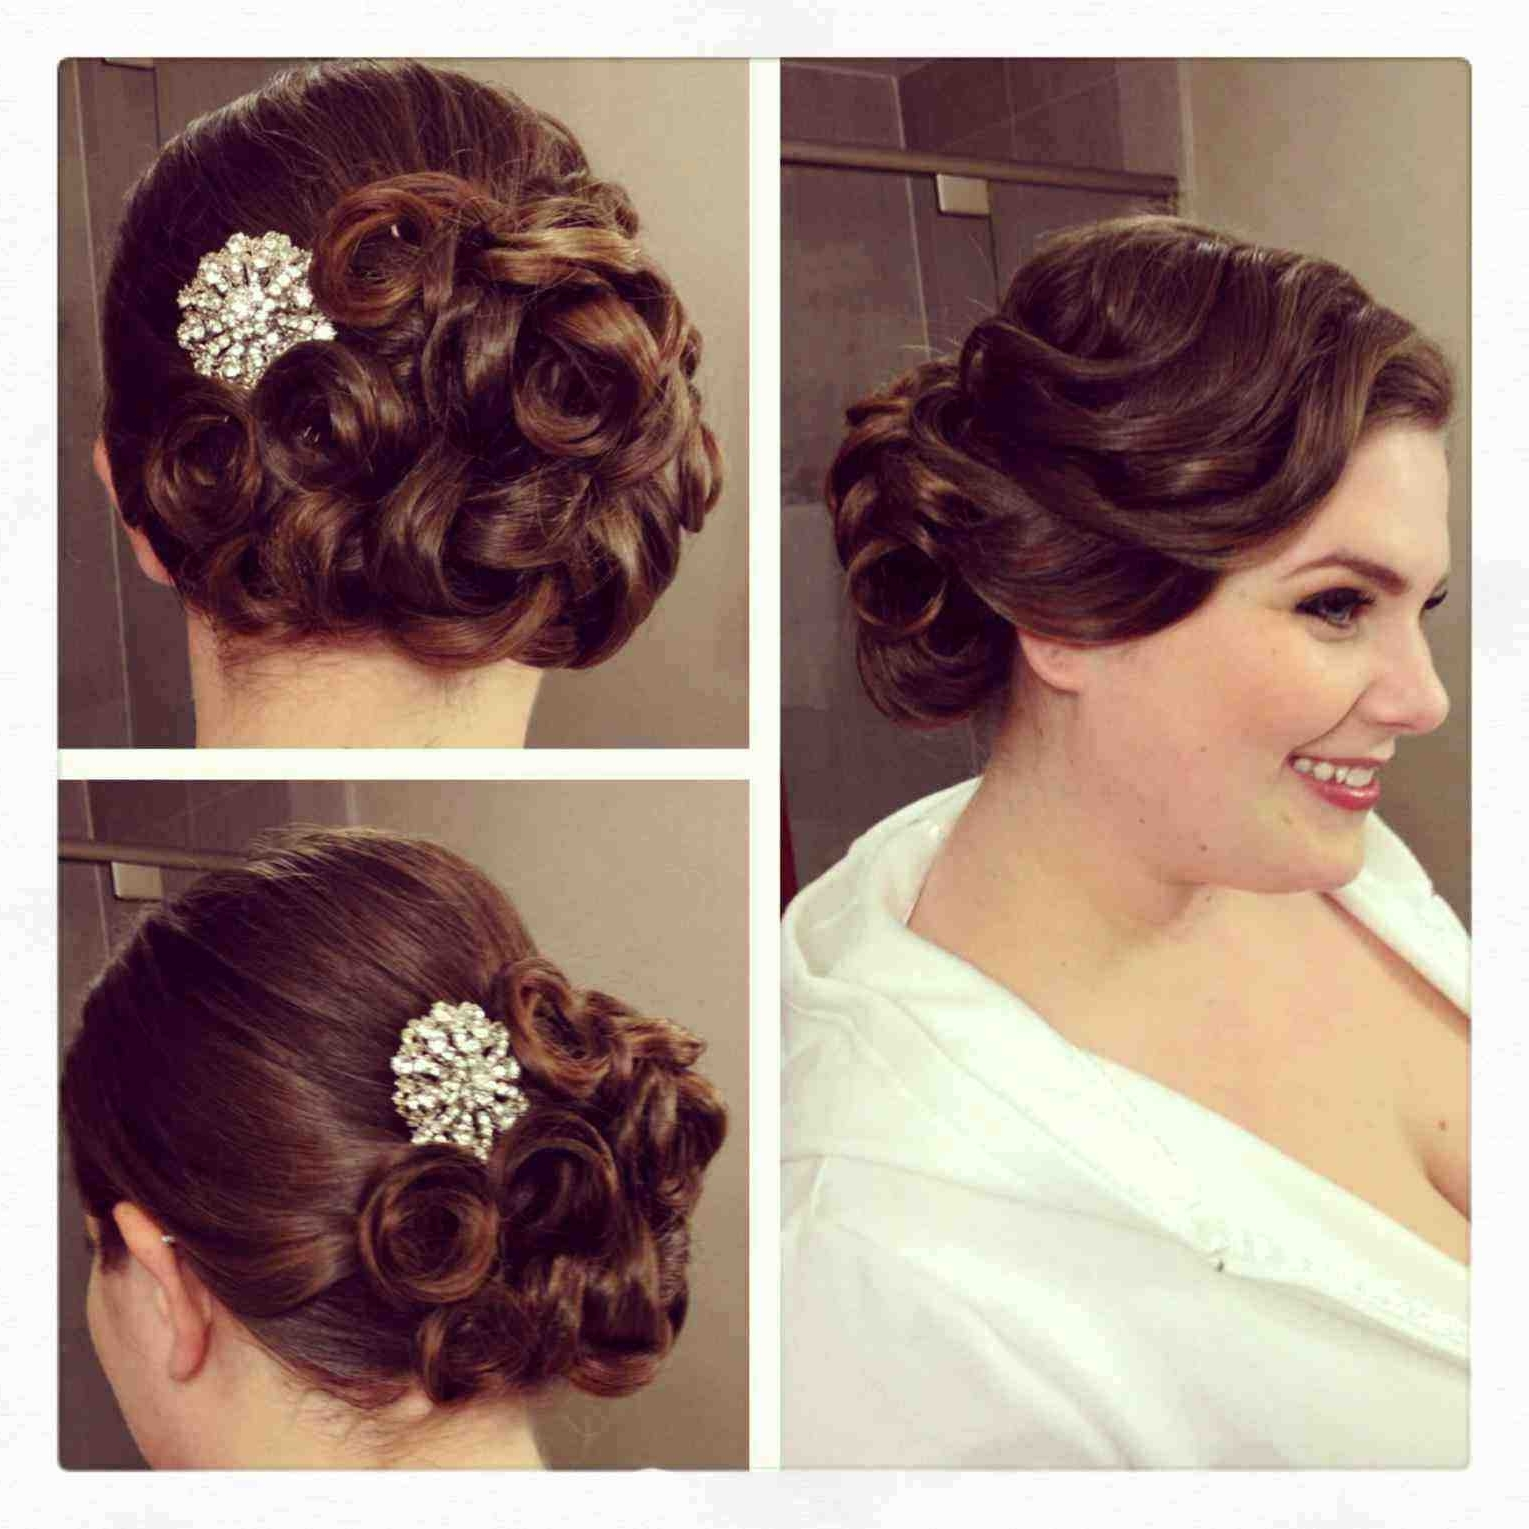 Wedding Hairstyles For Short Hair Updos Awesome Vintage Updo Wedding Within Preferred Vintage Updo Wedding Hairstyles (View 13 of 15)